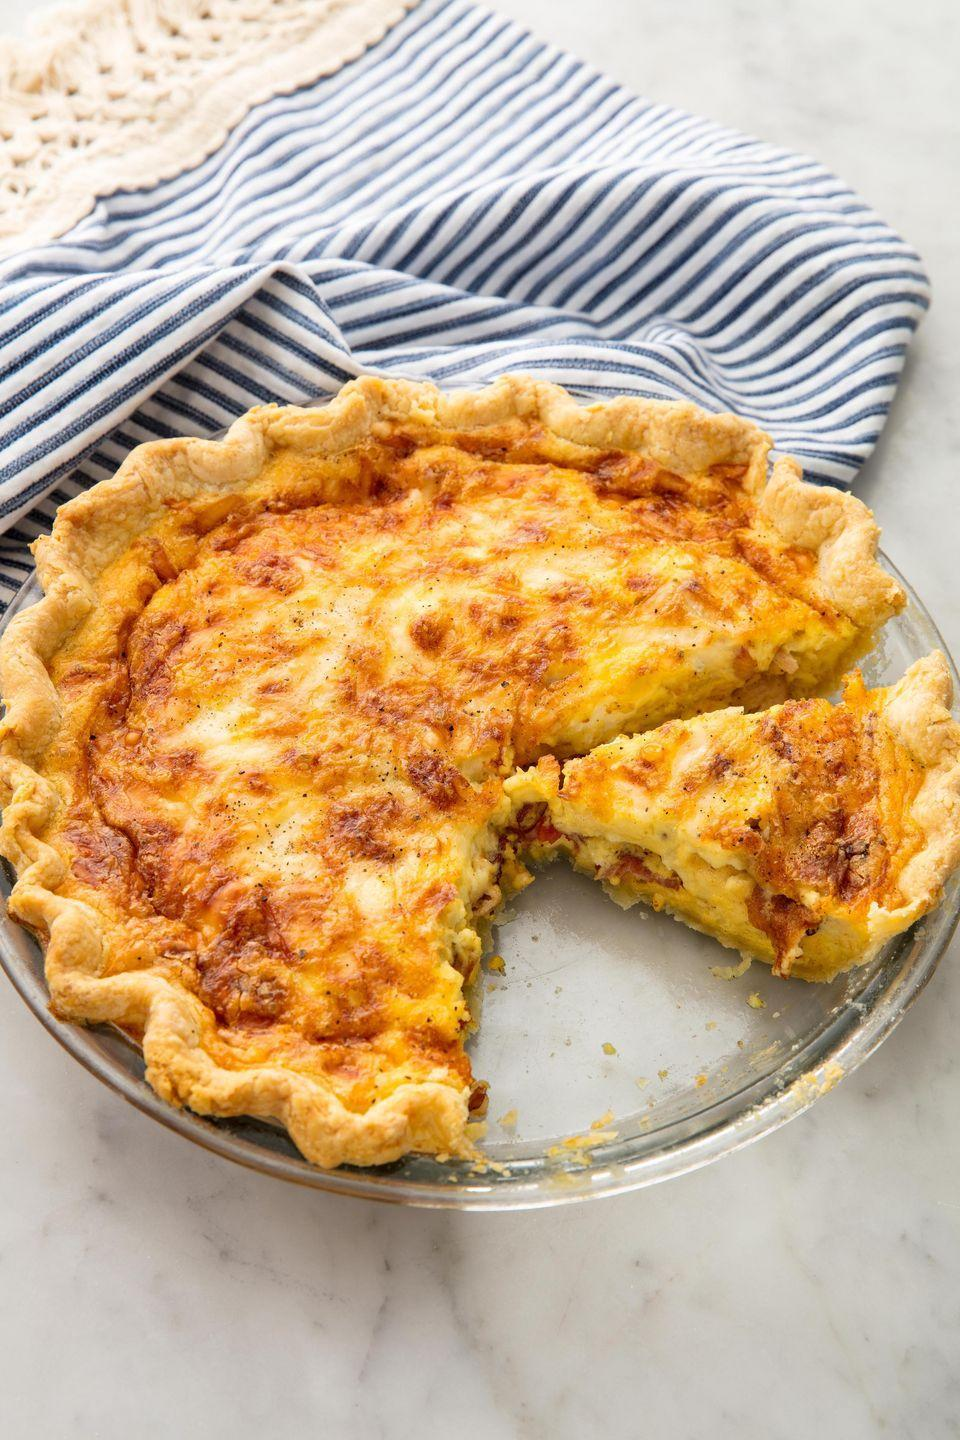 "<p>She'll appreciate the effort this guy takes—and the whole fam can enjoy a slice!</p><p>Get the recipe from <a href=""https://www.delish.com/cooking/recipe-ideas/recipes/a58388/easy-quiche-lorraine-recipe/"" rel=""nofollow noopener"" target=""_blank"" data-ylk=""slk:Delish"" class=""link rapid-noclick-resp"">Delish</a>. </p>"